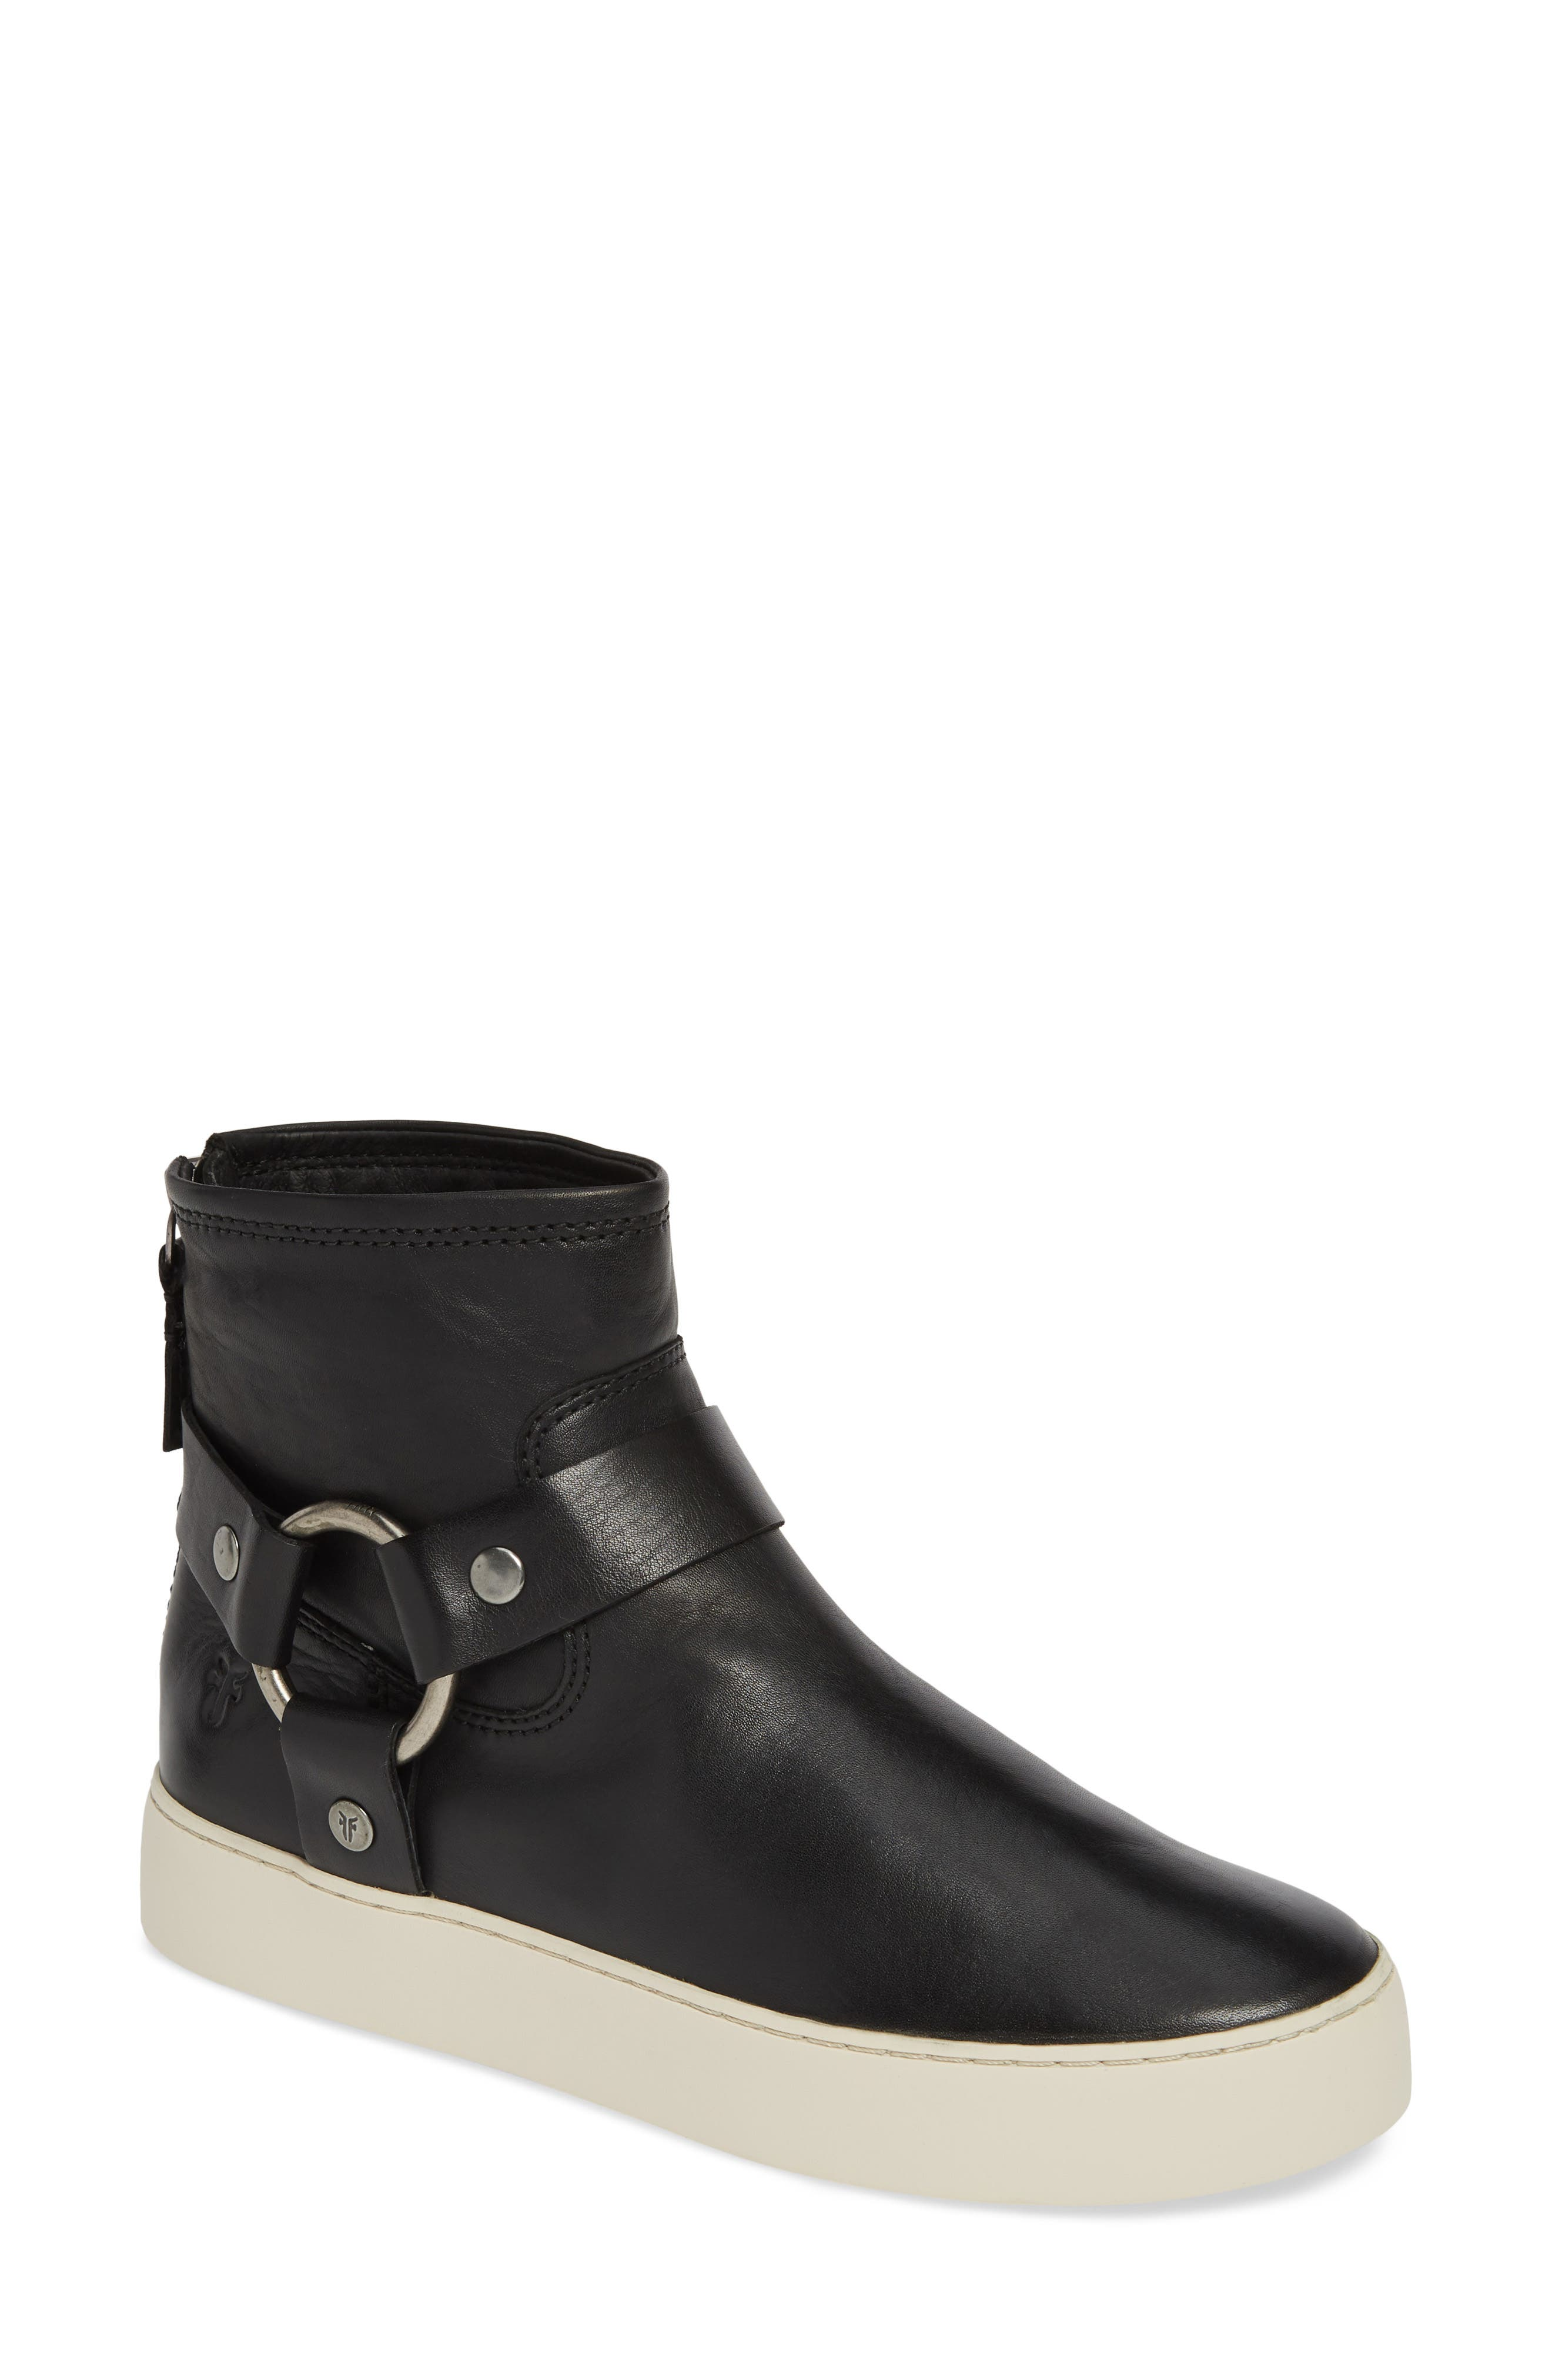 FRYE Lena Harness Bootie, Main, color, BLACK LEATHER